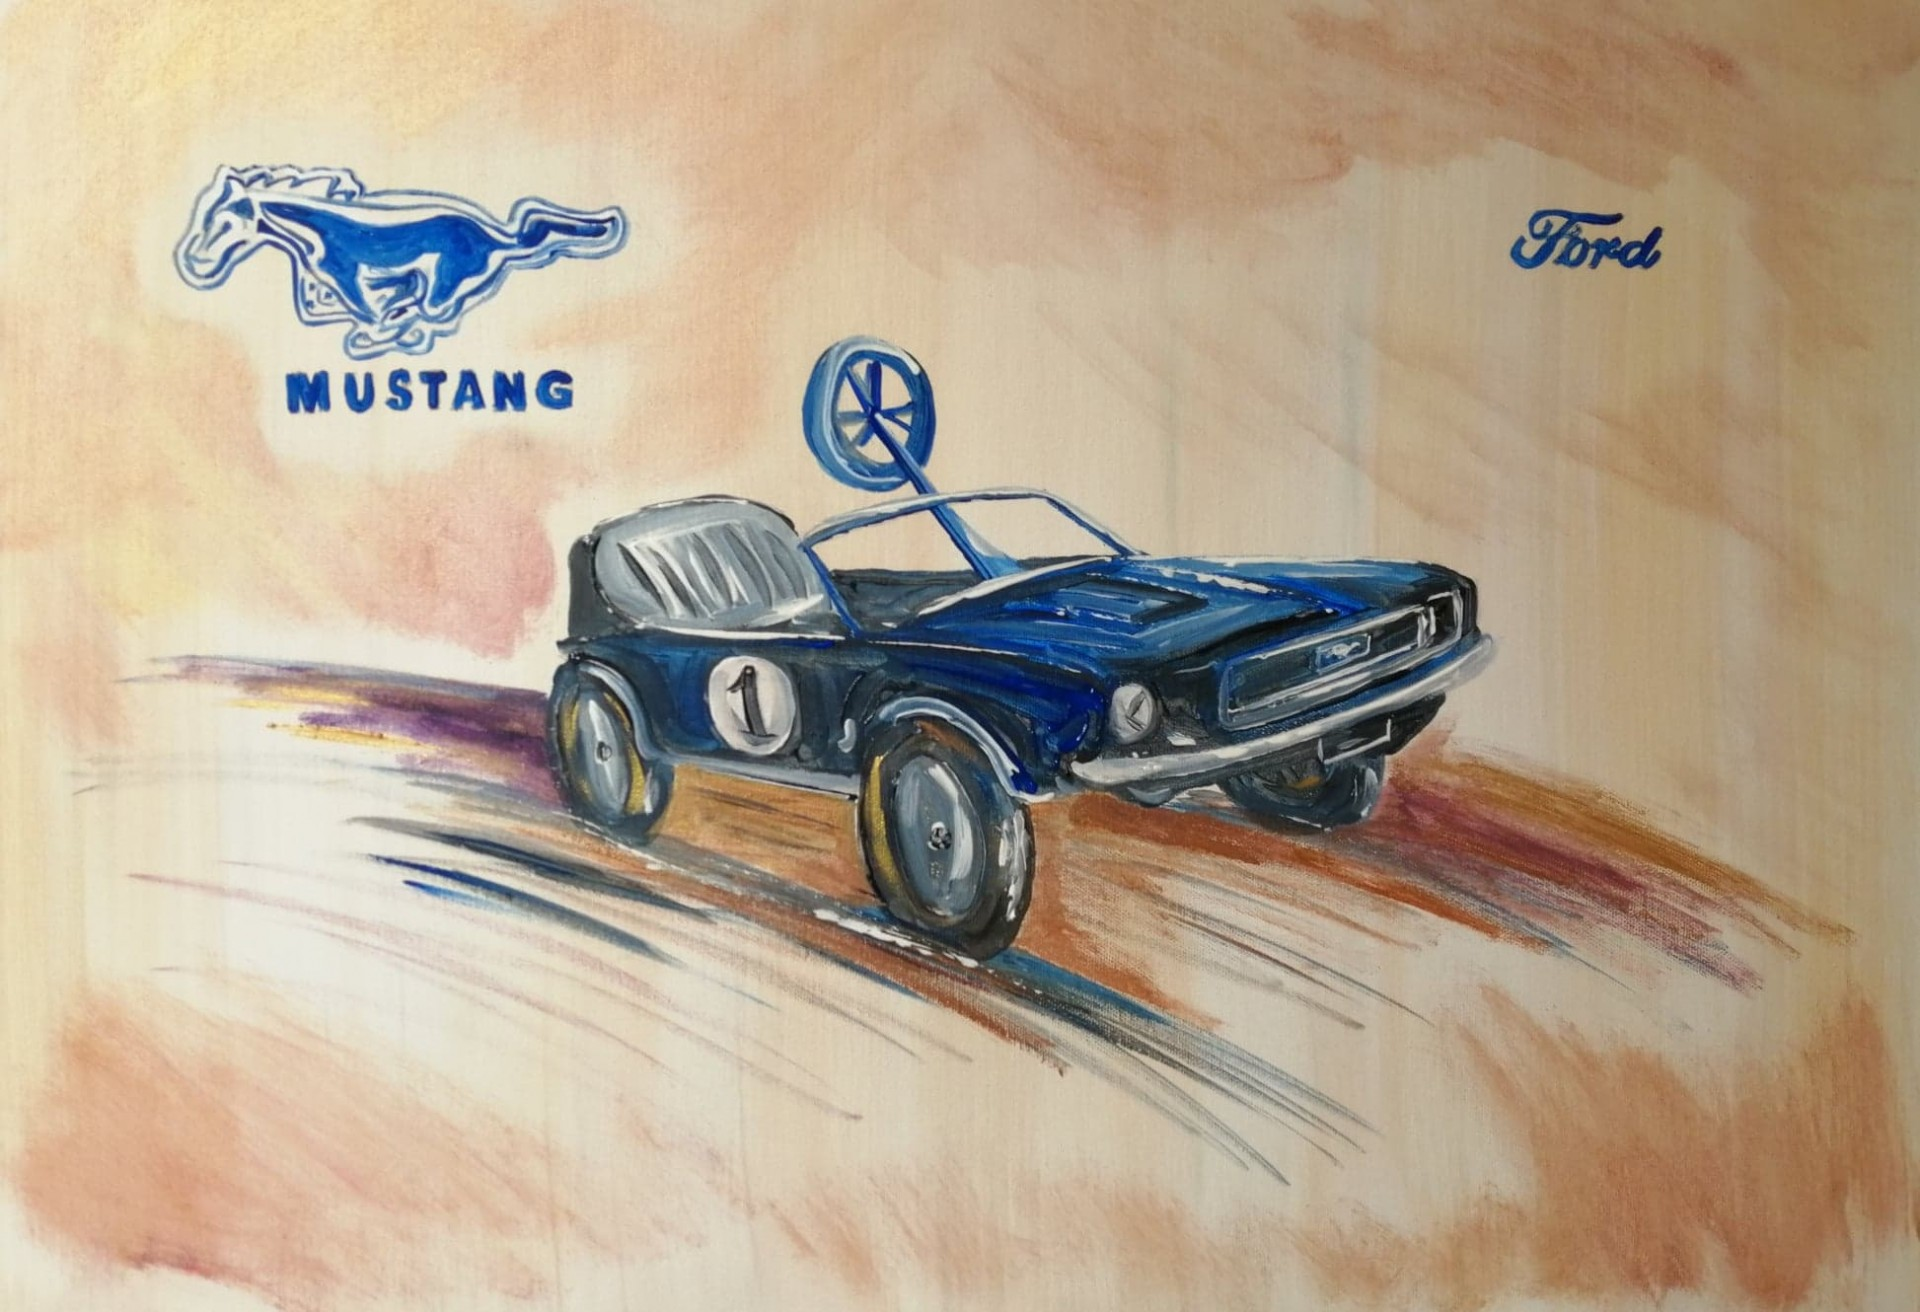 Ford mustang voiture a pedales 50 x 70 cm